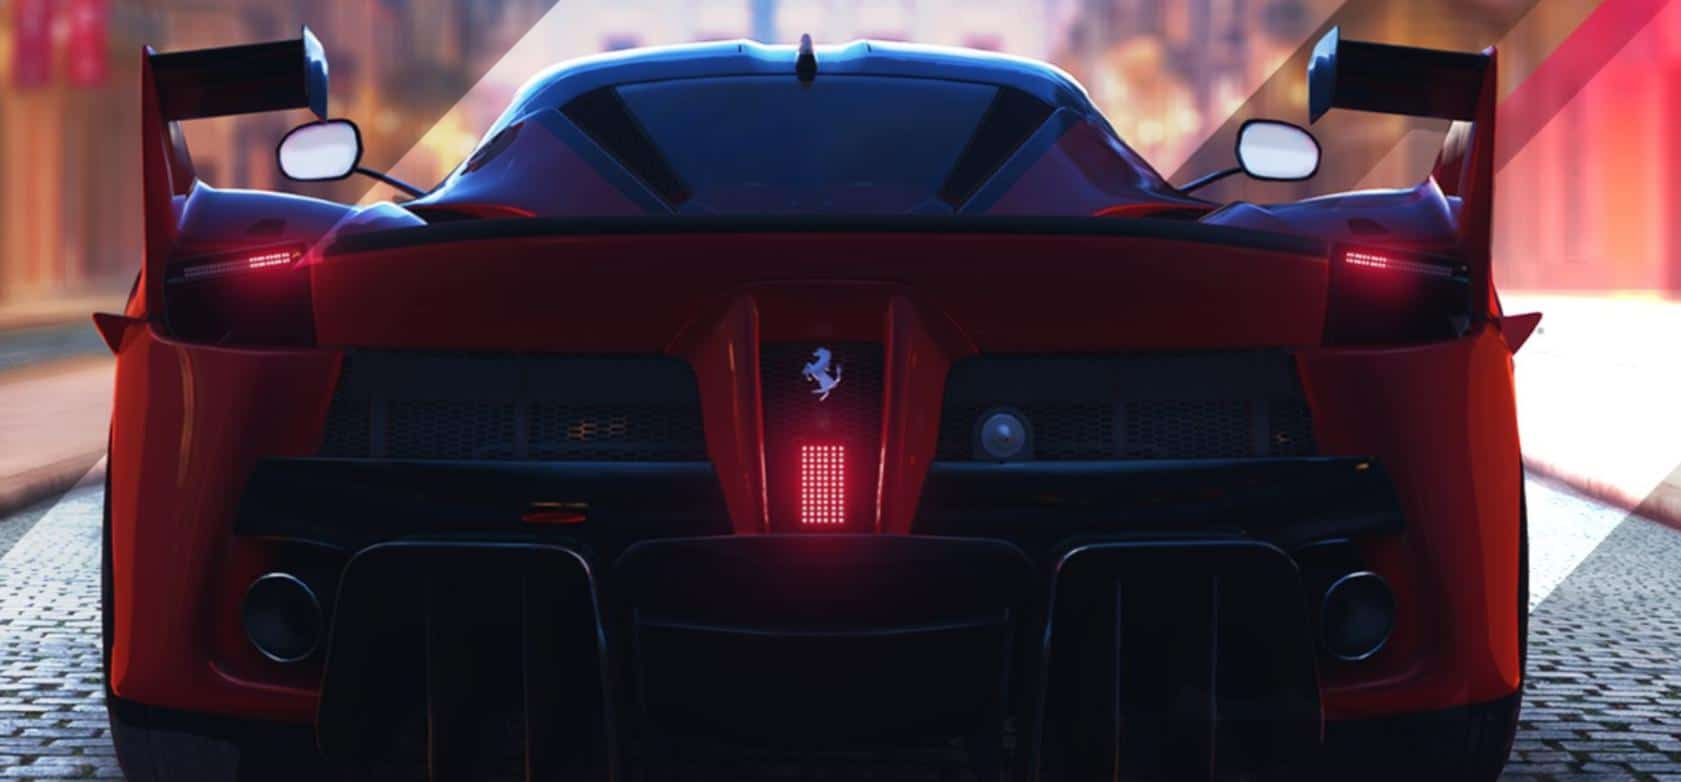 Asphalt 9 Legends Windows 10